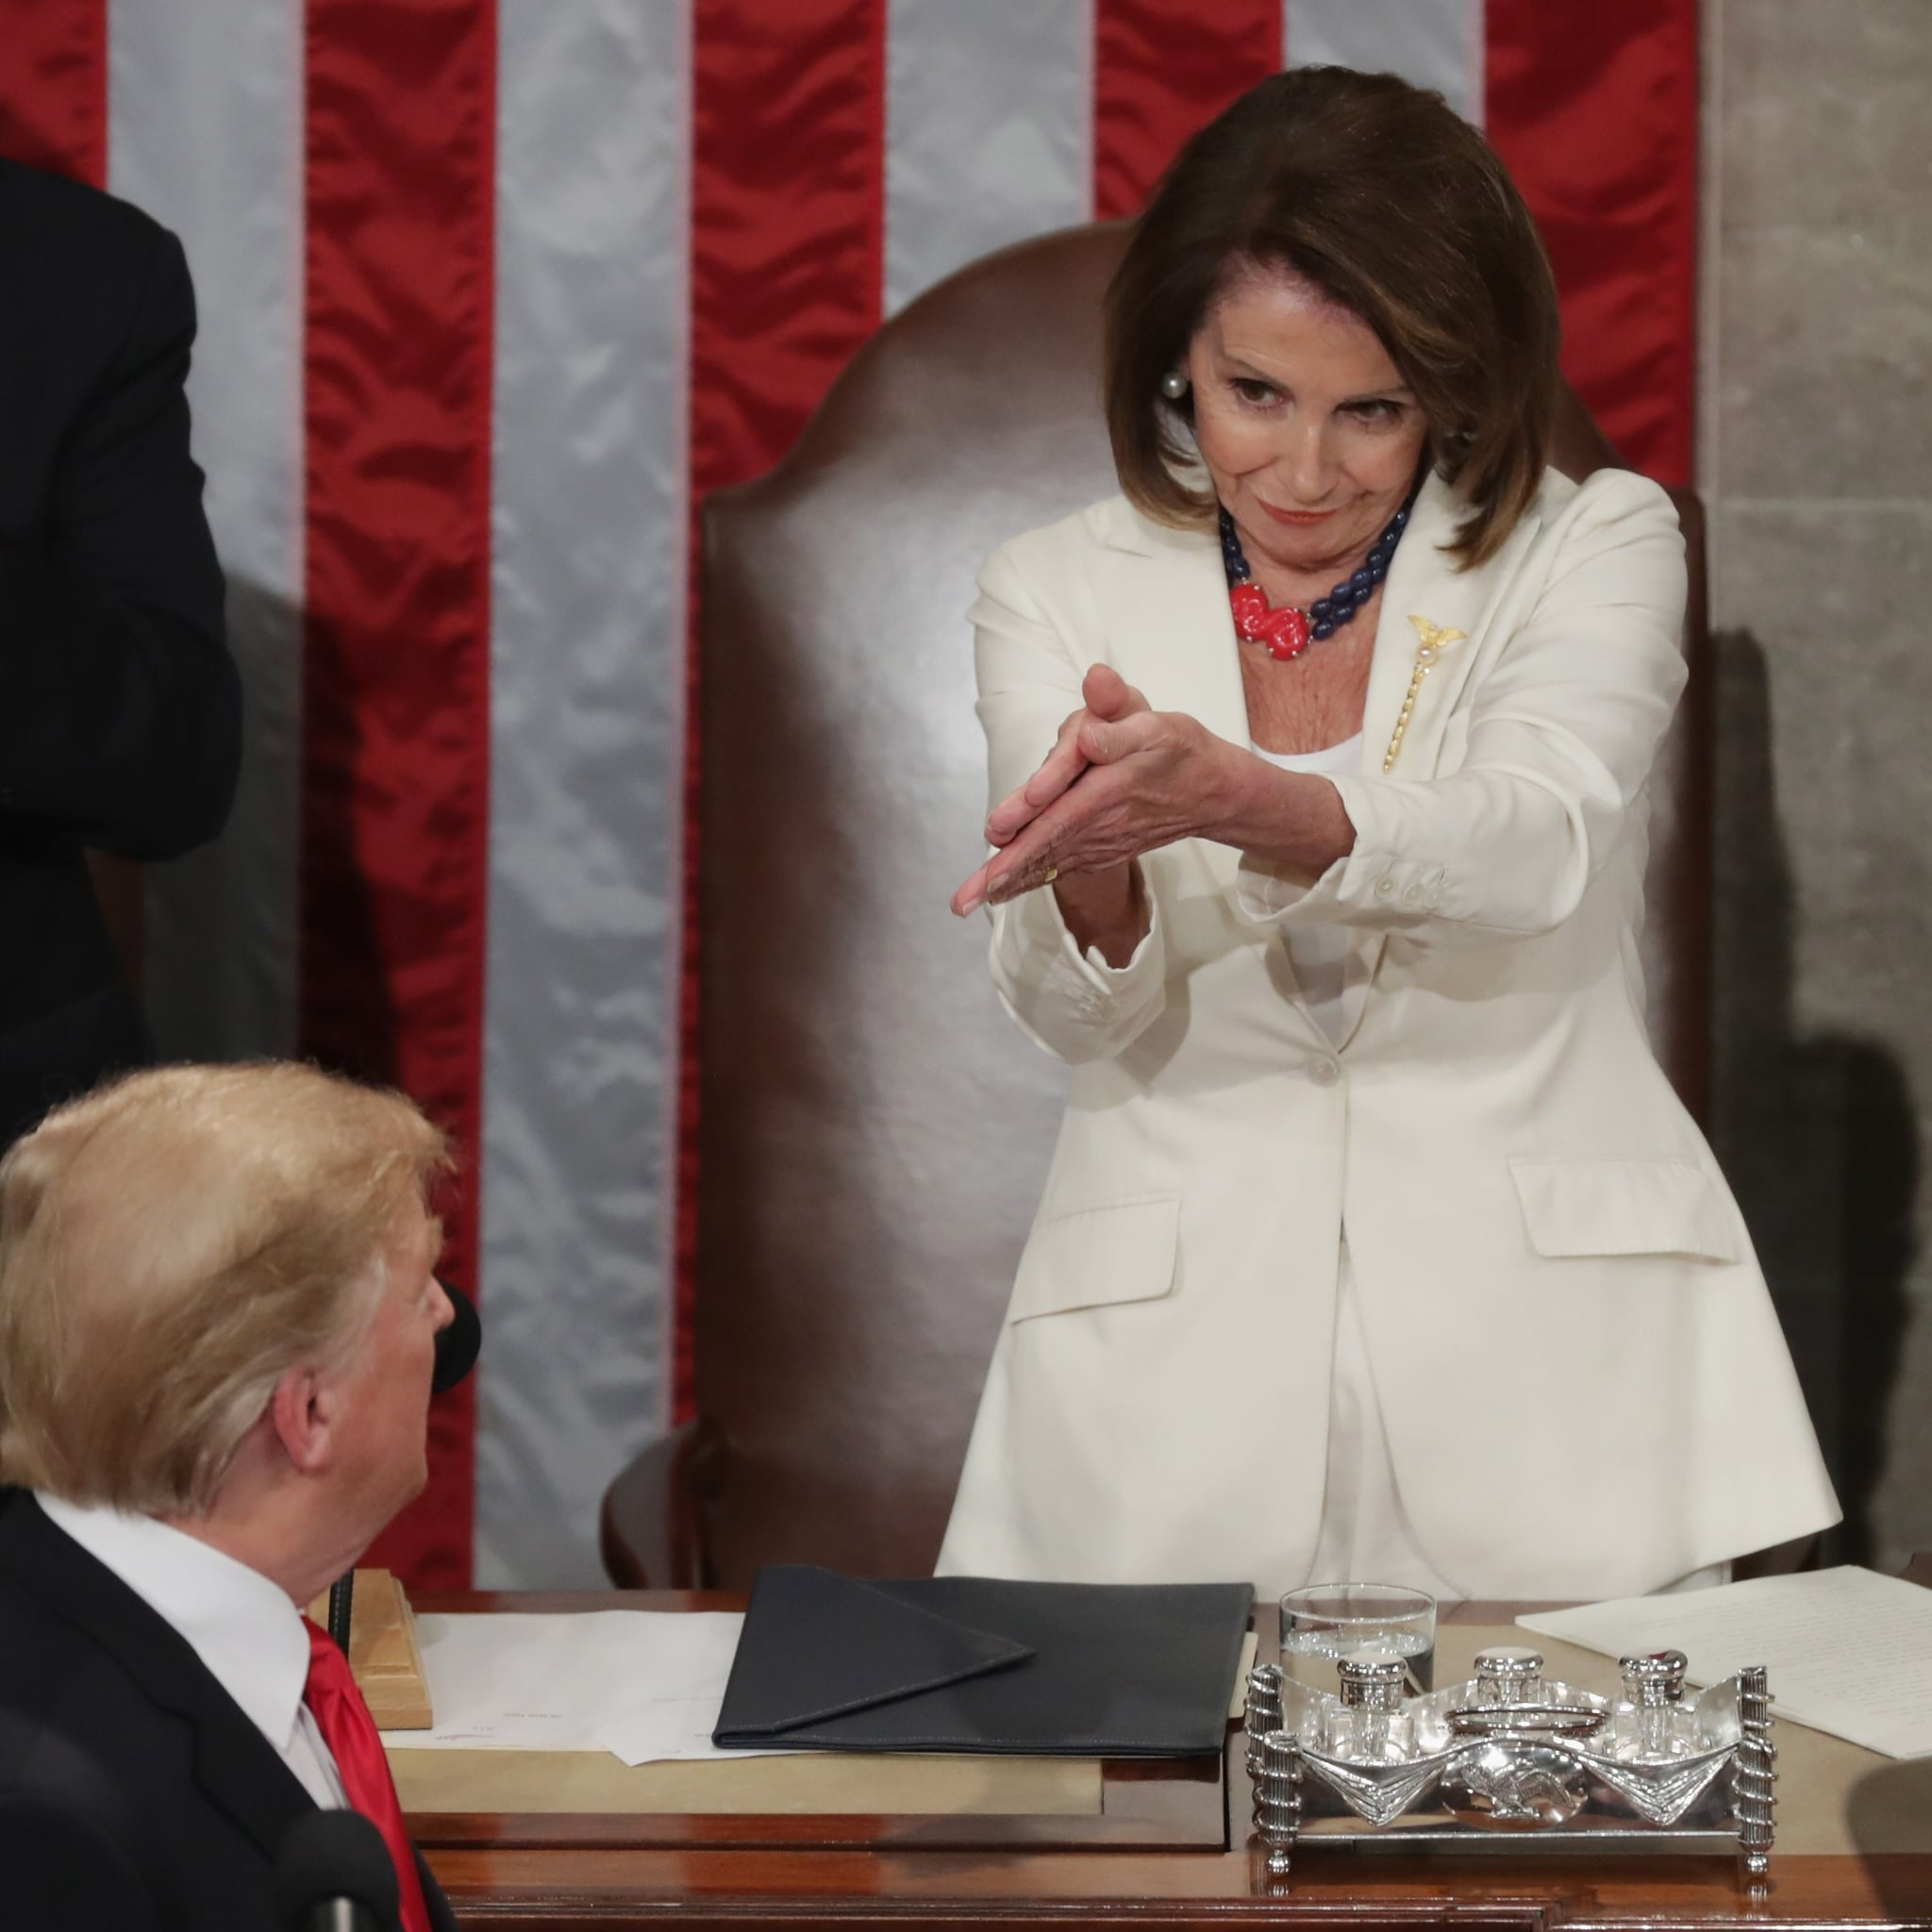 Nancy-Pelosi-State-Union-Clapping-Meme-2019.jpg